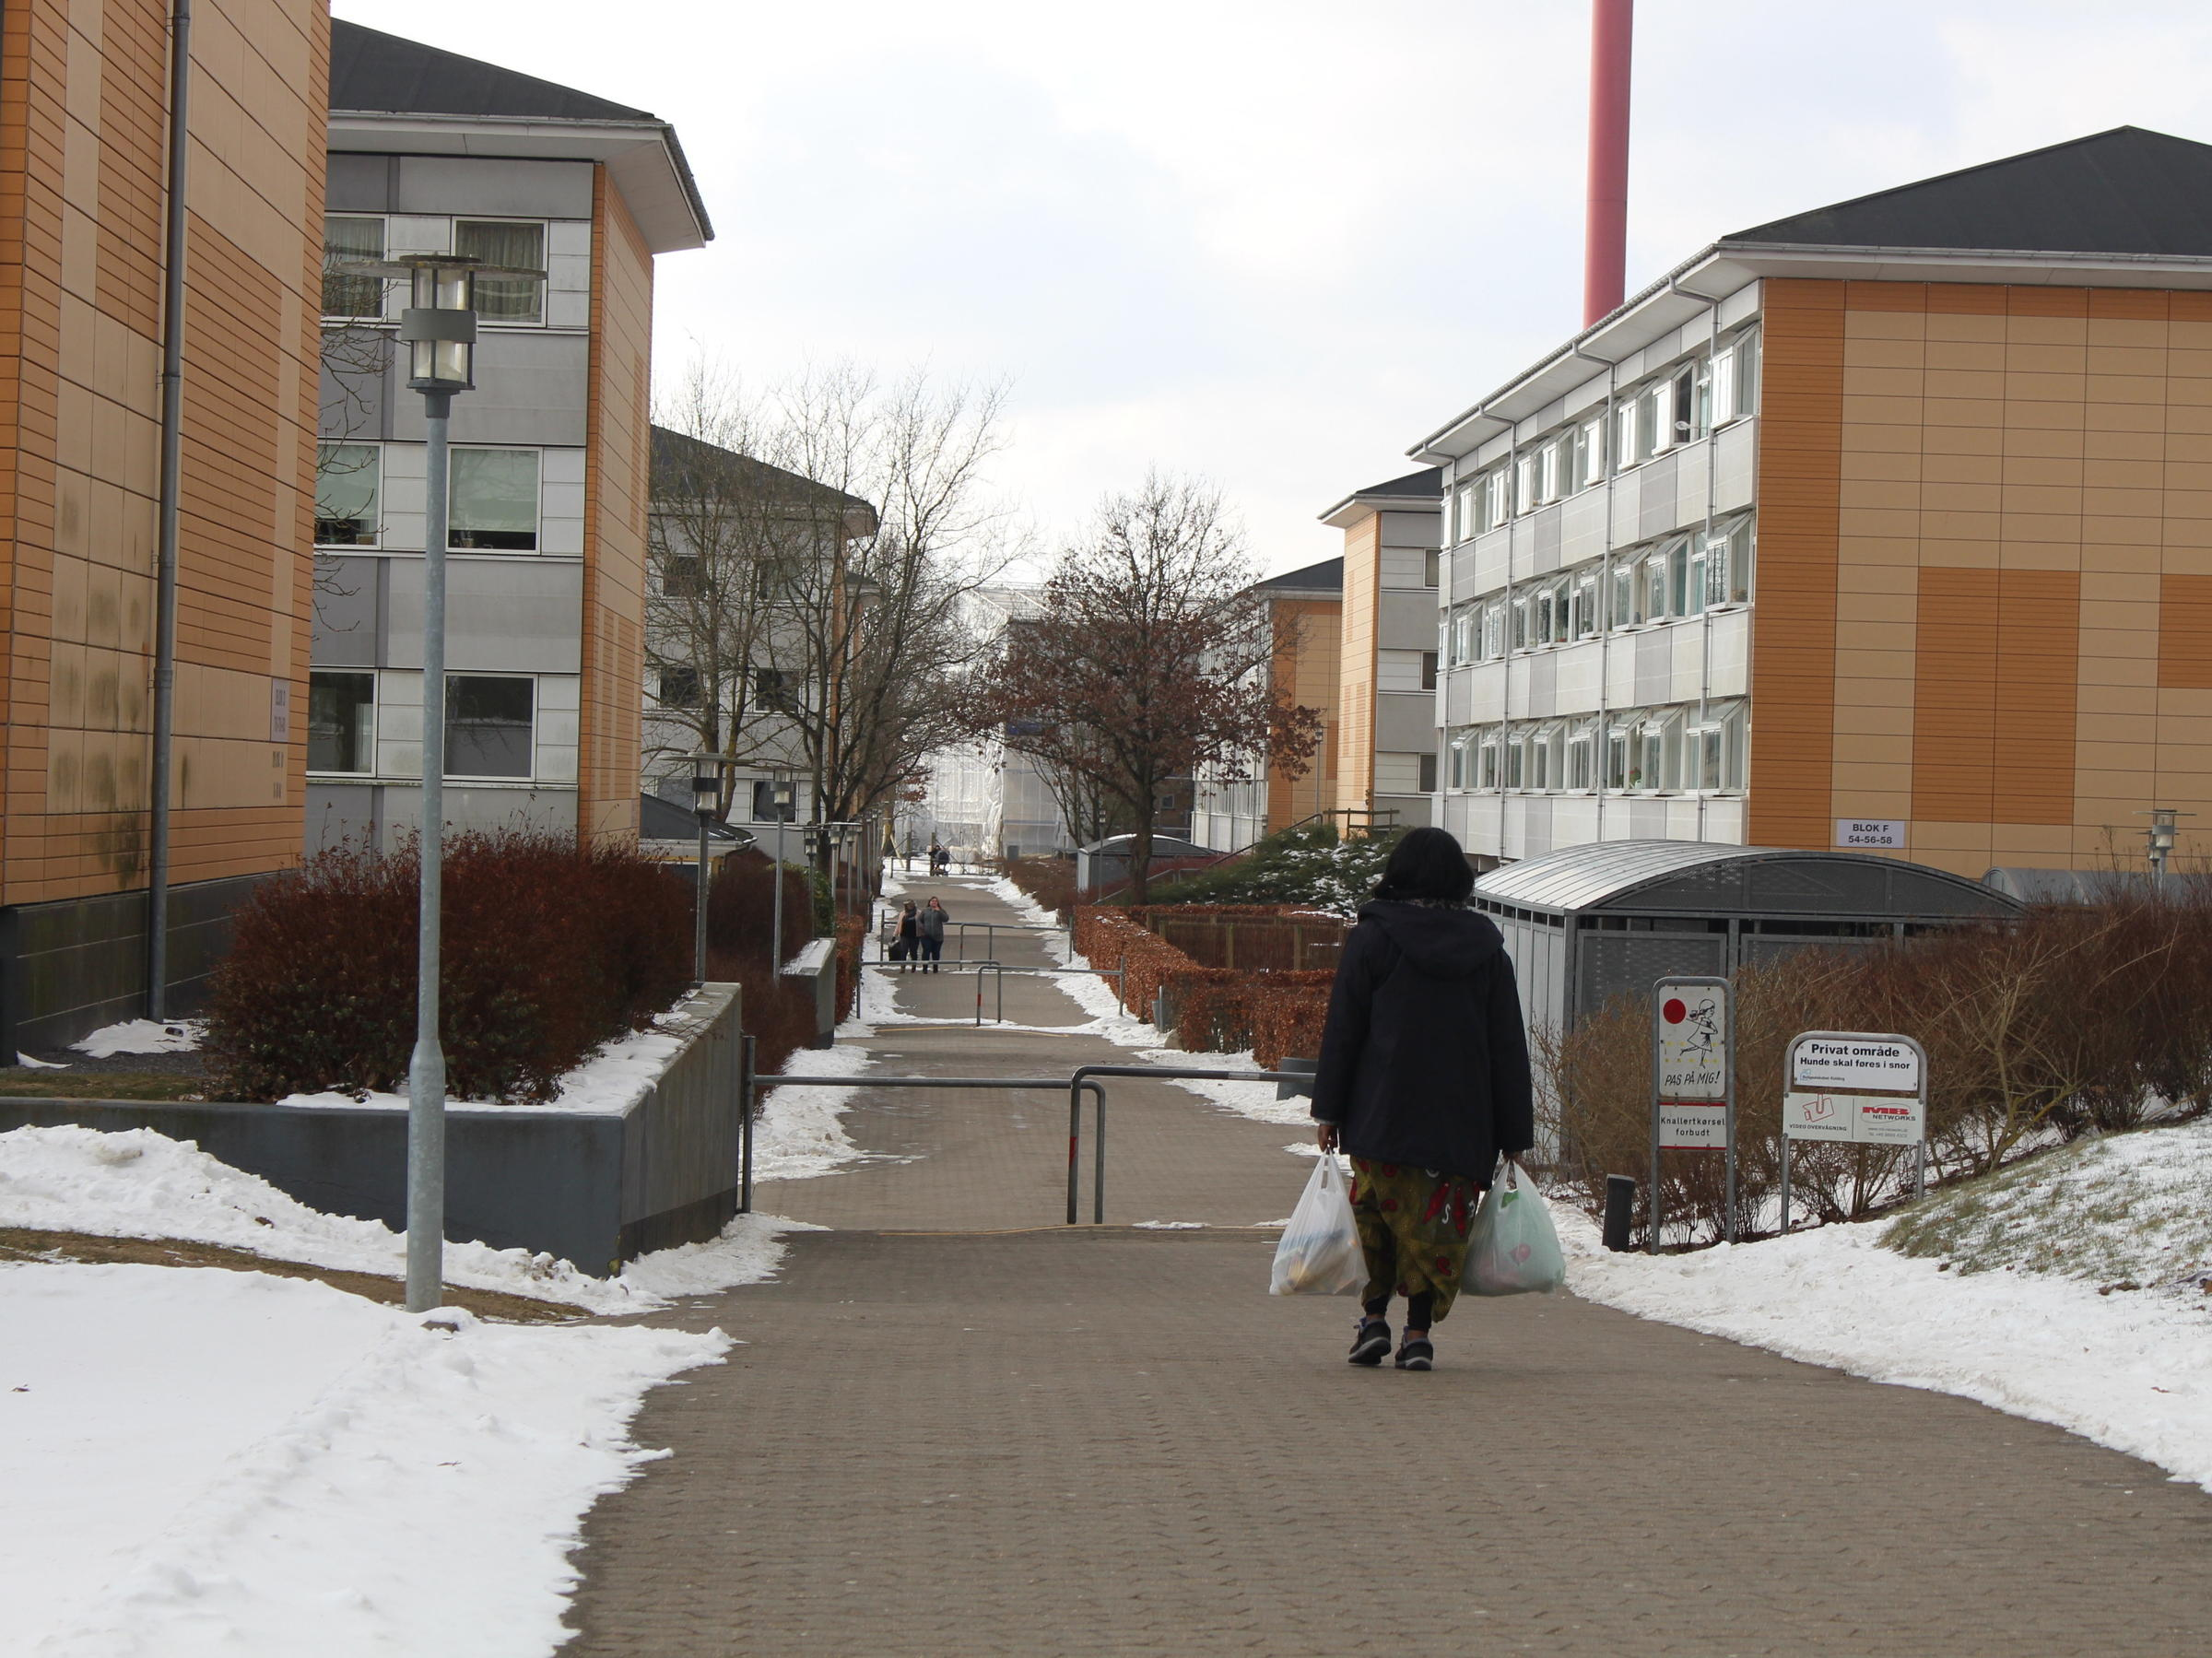 in denmark's plan to rid country of 'ghettos,' some